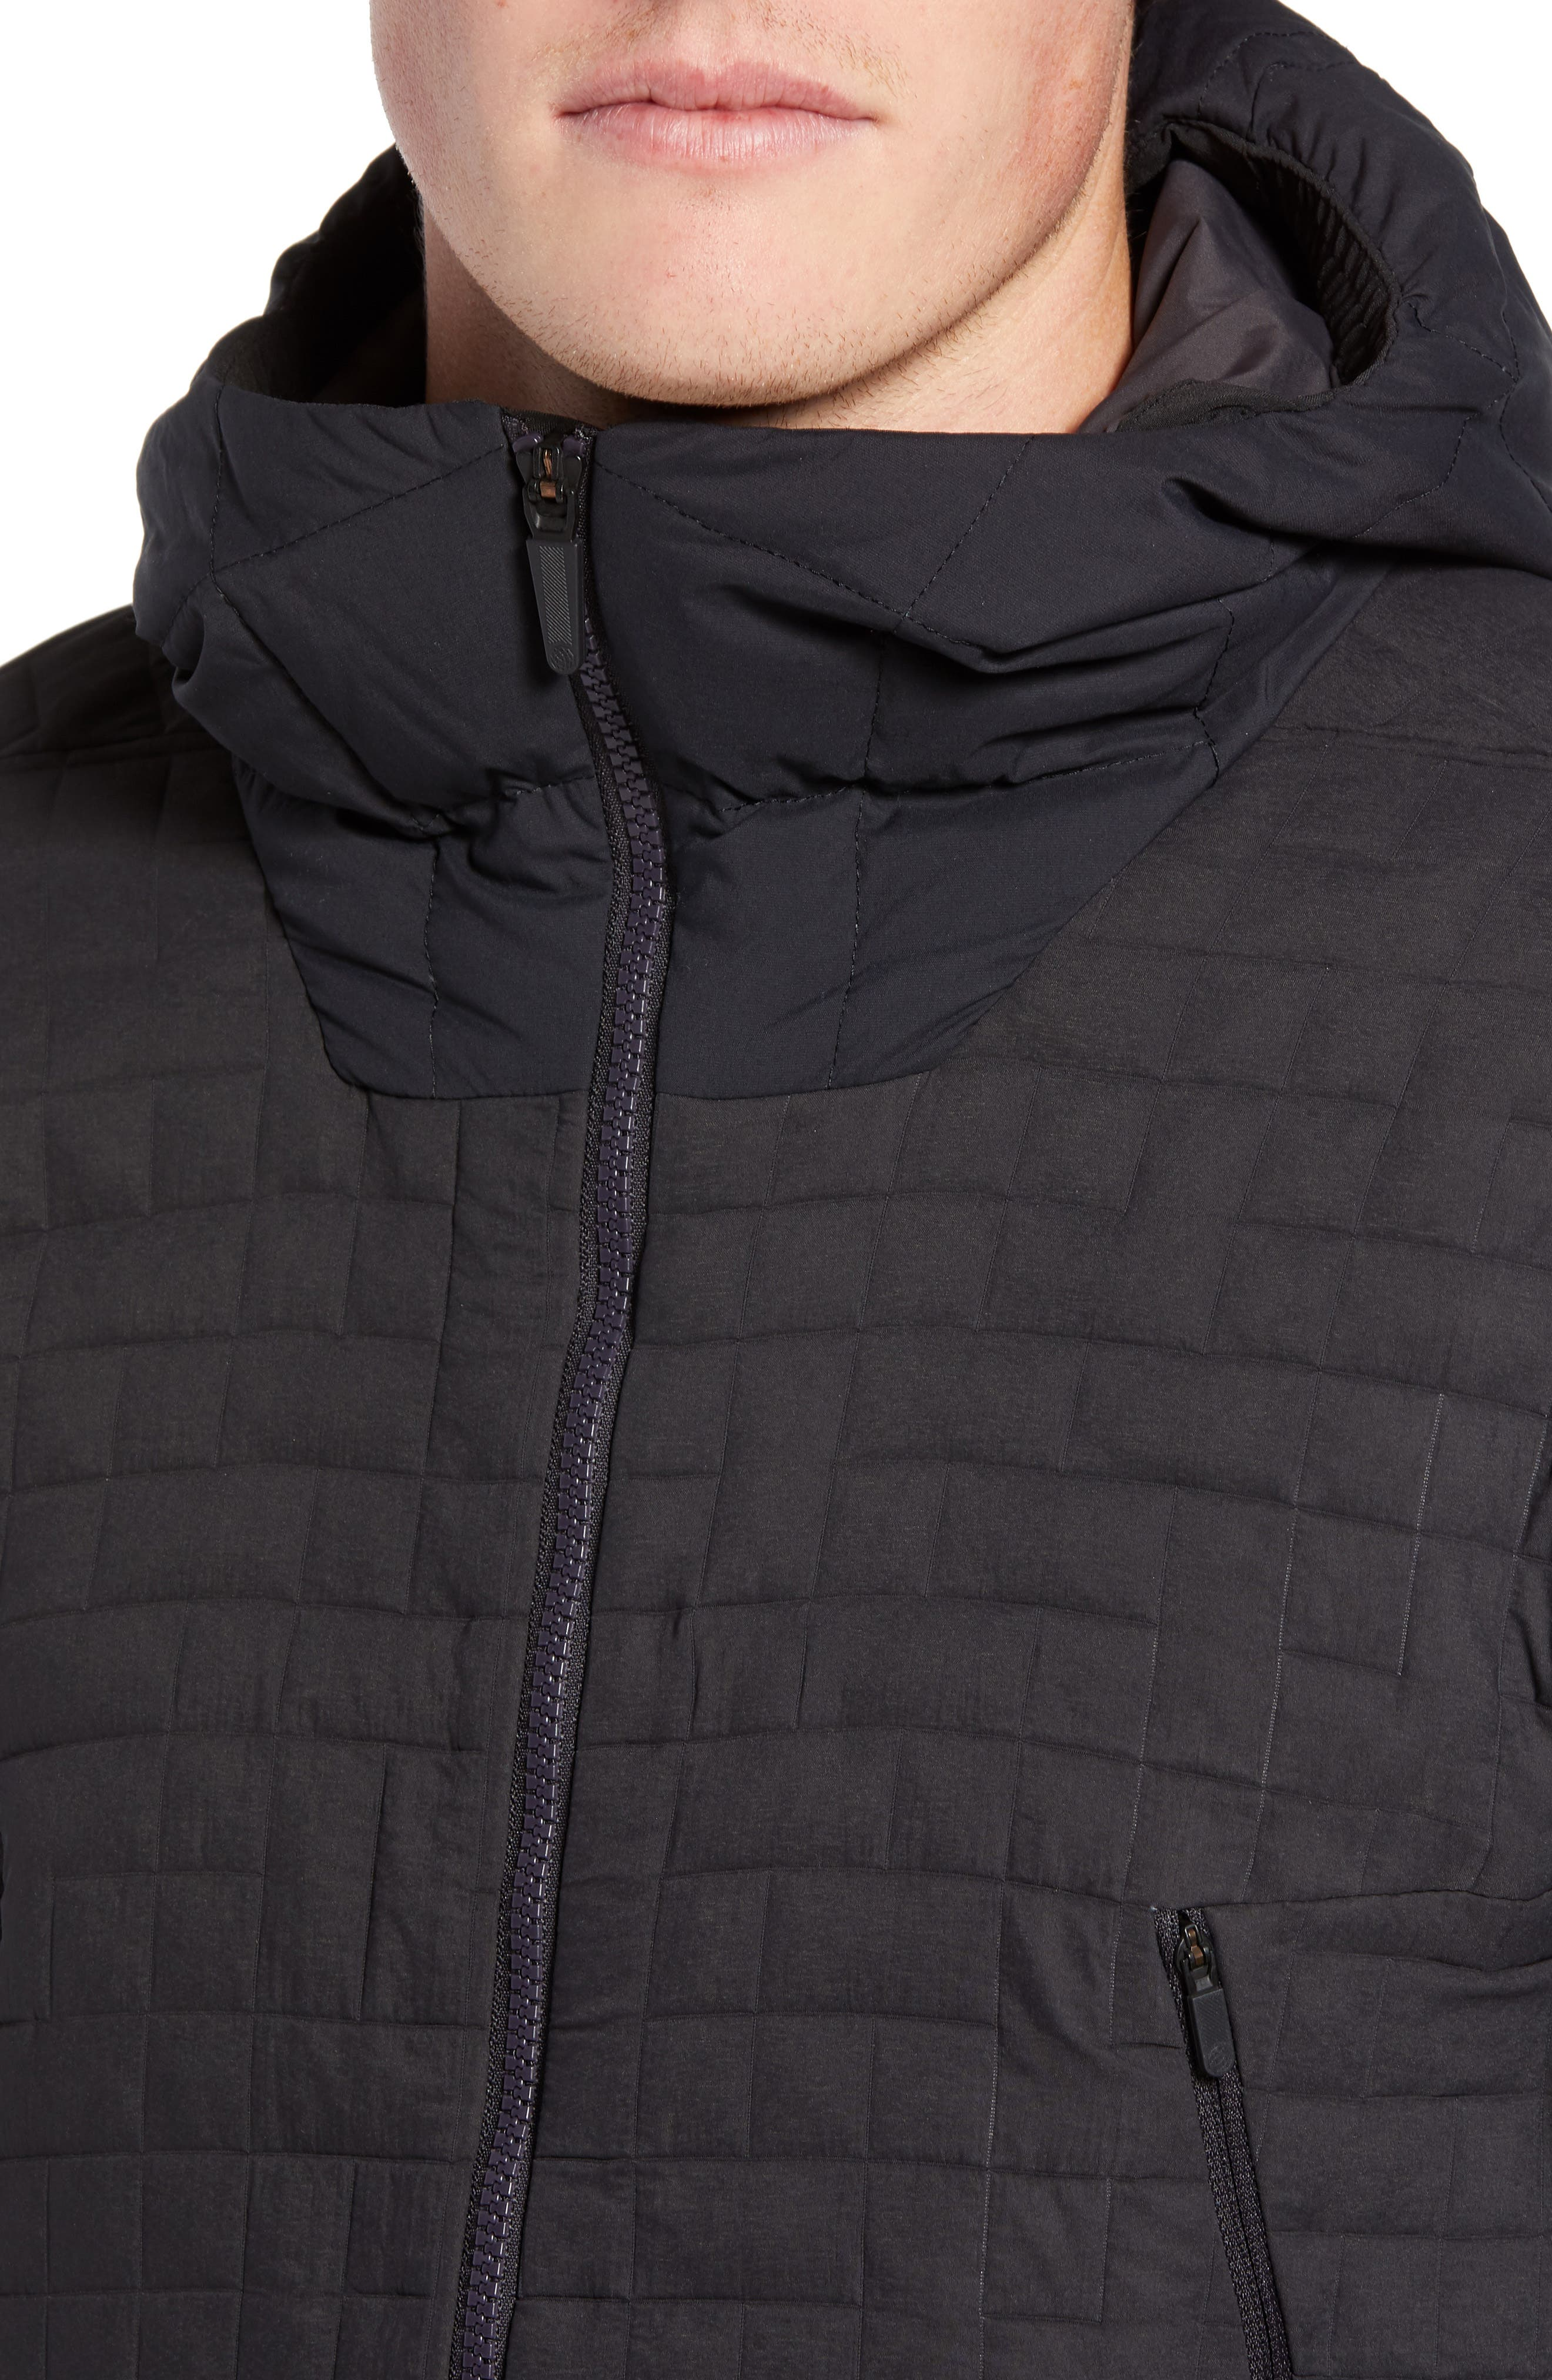 THE NORTH FACE,                             Cryos SingleCell Insulated Hooded Jacket,                             Alternate thumbnail 4, color,                             001